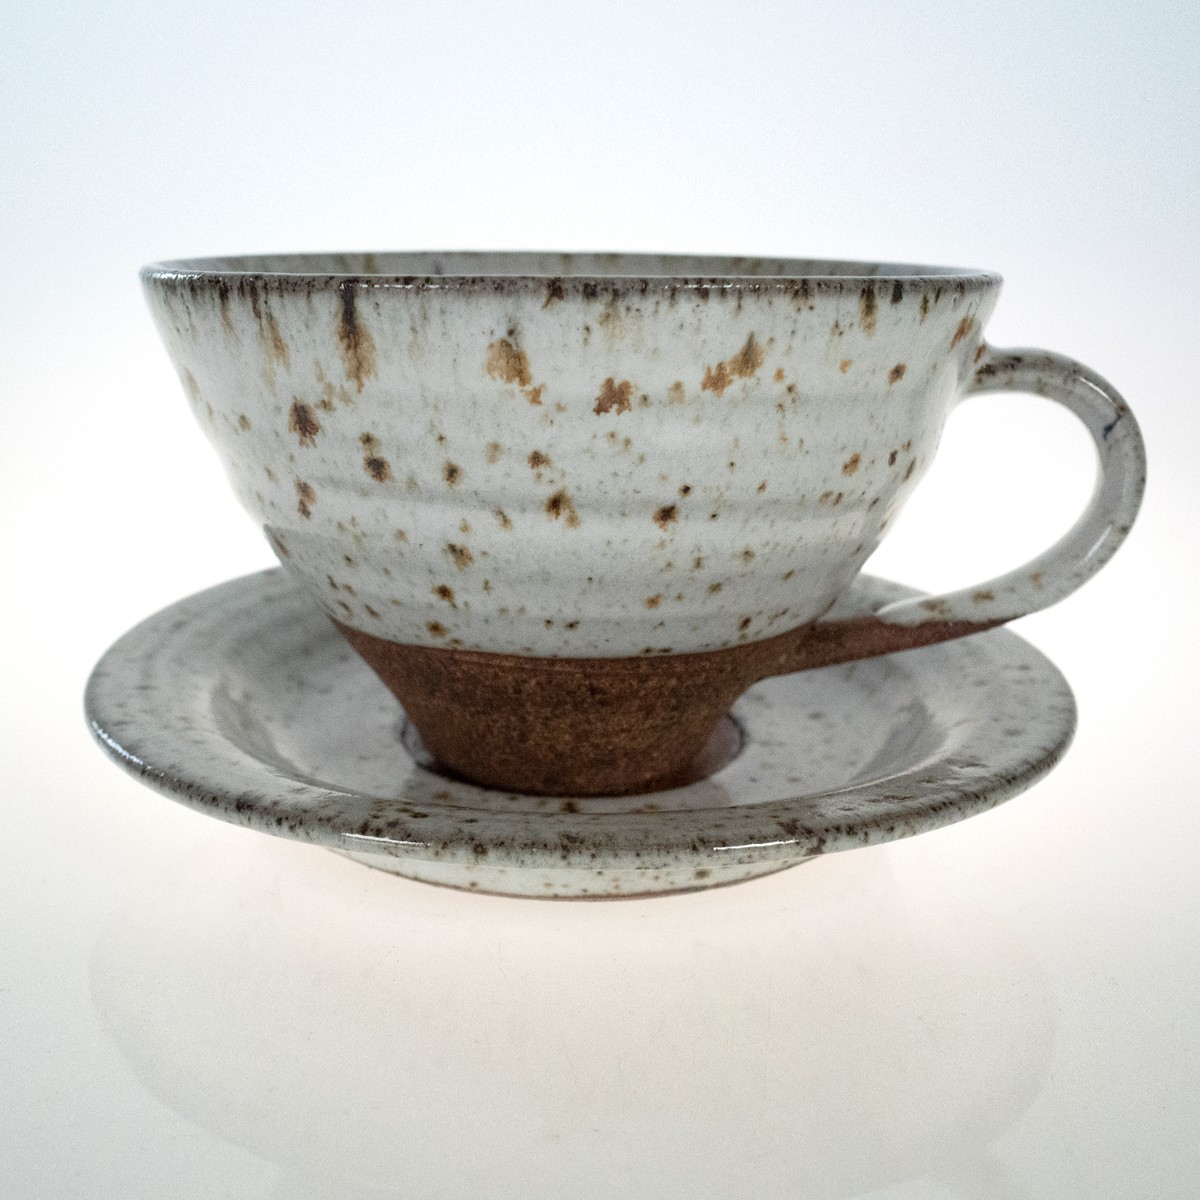 Photo of Omotenashi Cup and Saucer